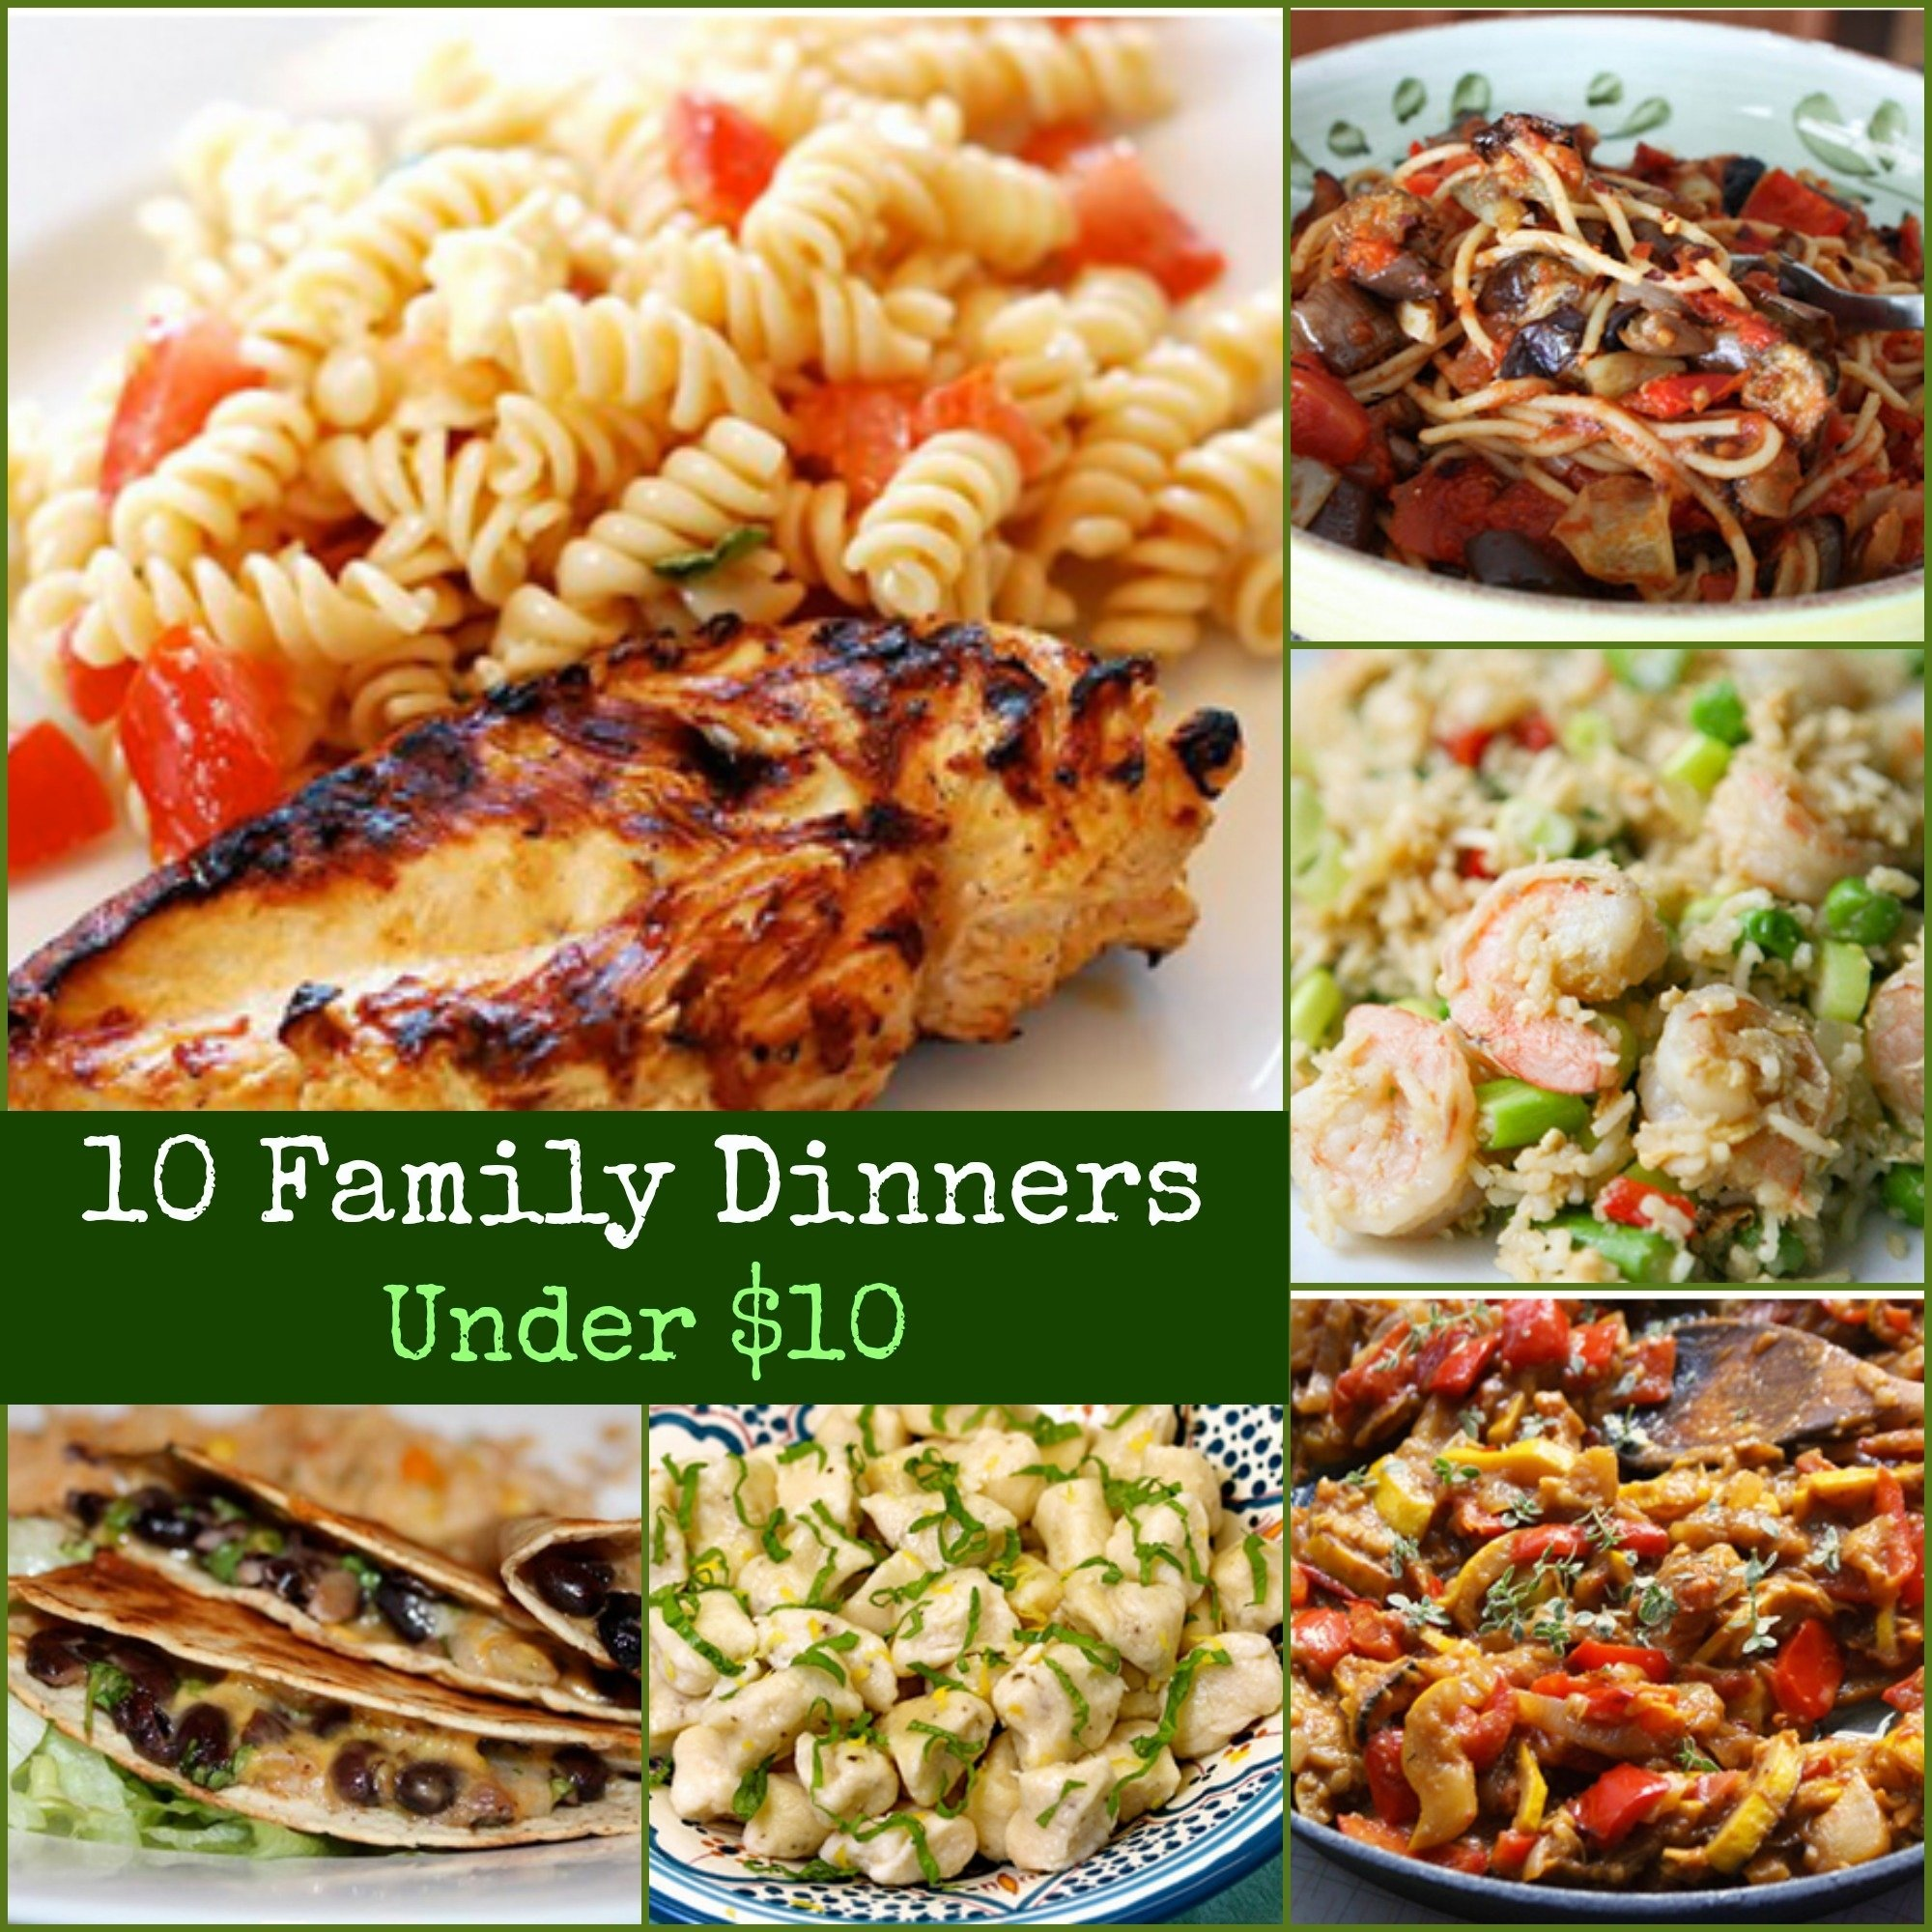 download quick and easy dinner recipes for family | food photos